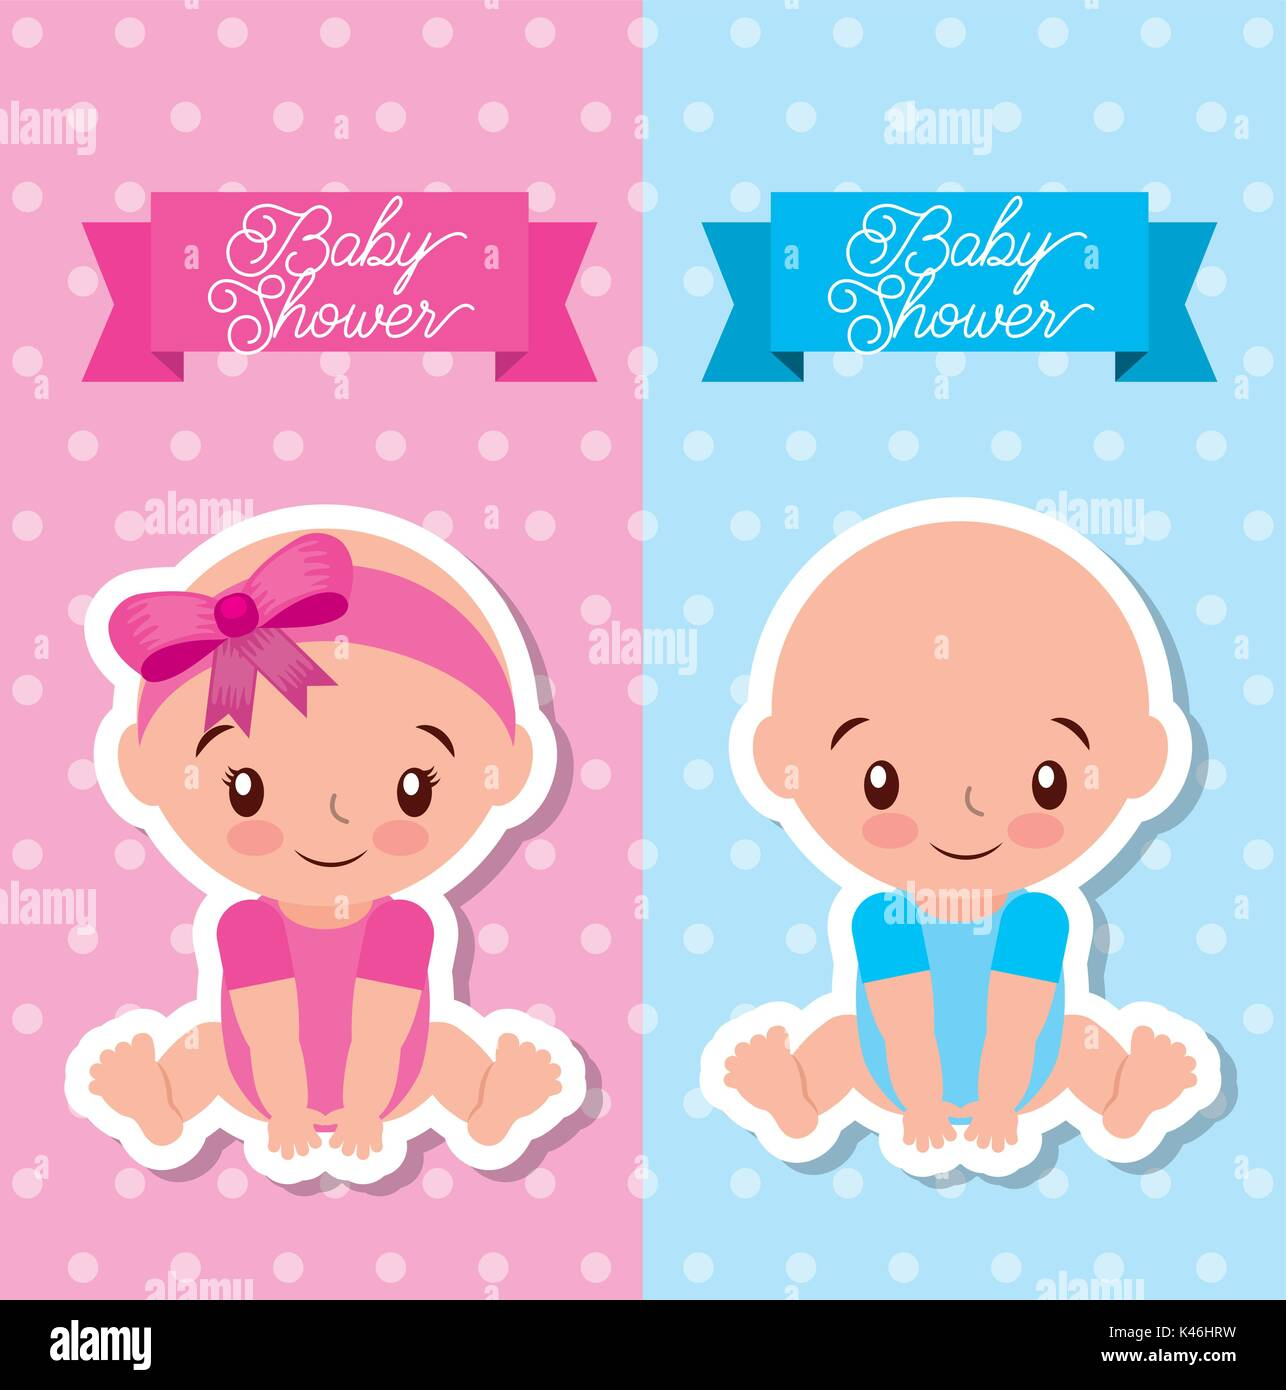 Baby shower greeting card with boy and girl stock vector art baby shower greeting card with boy and girl m4hsunfo